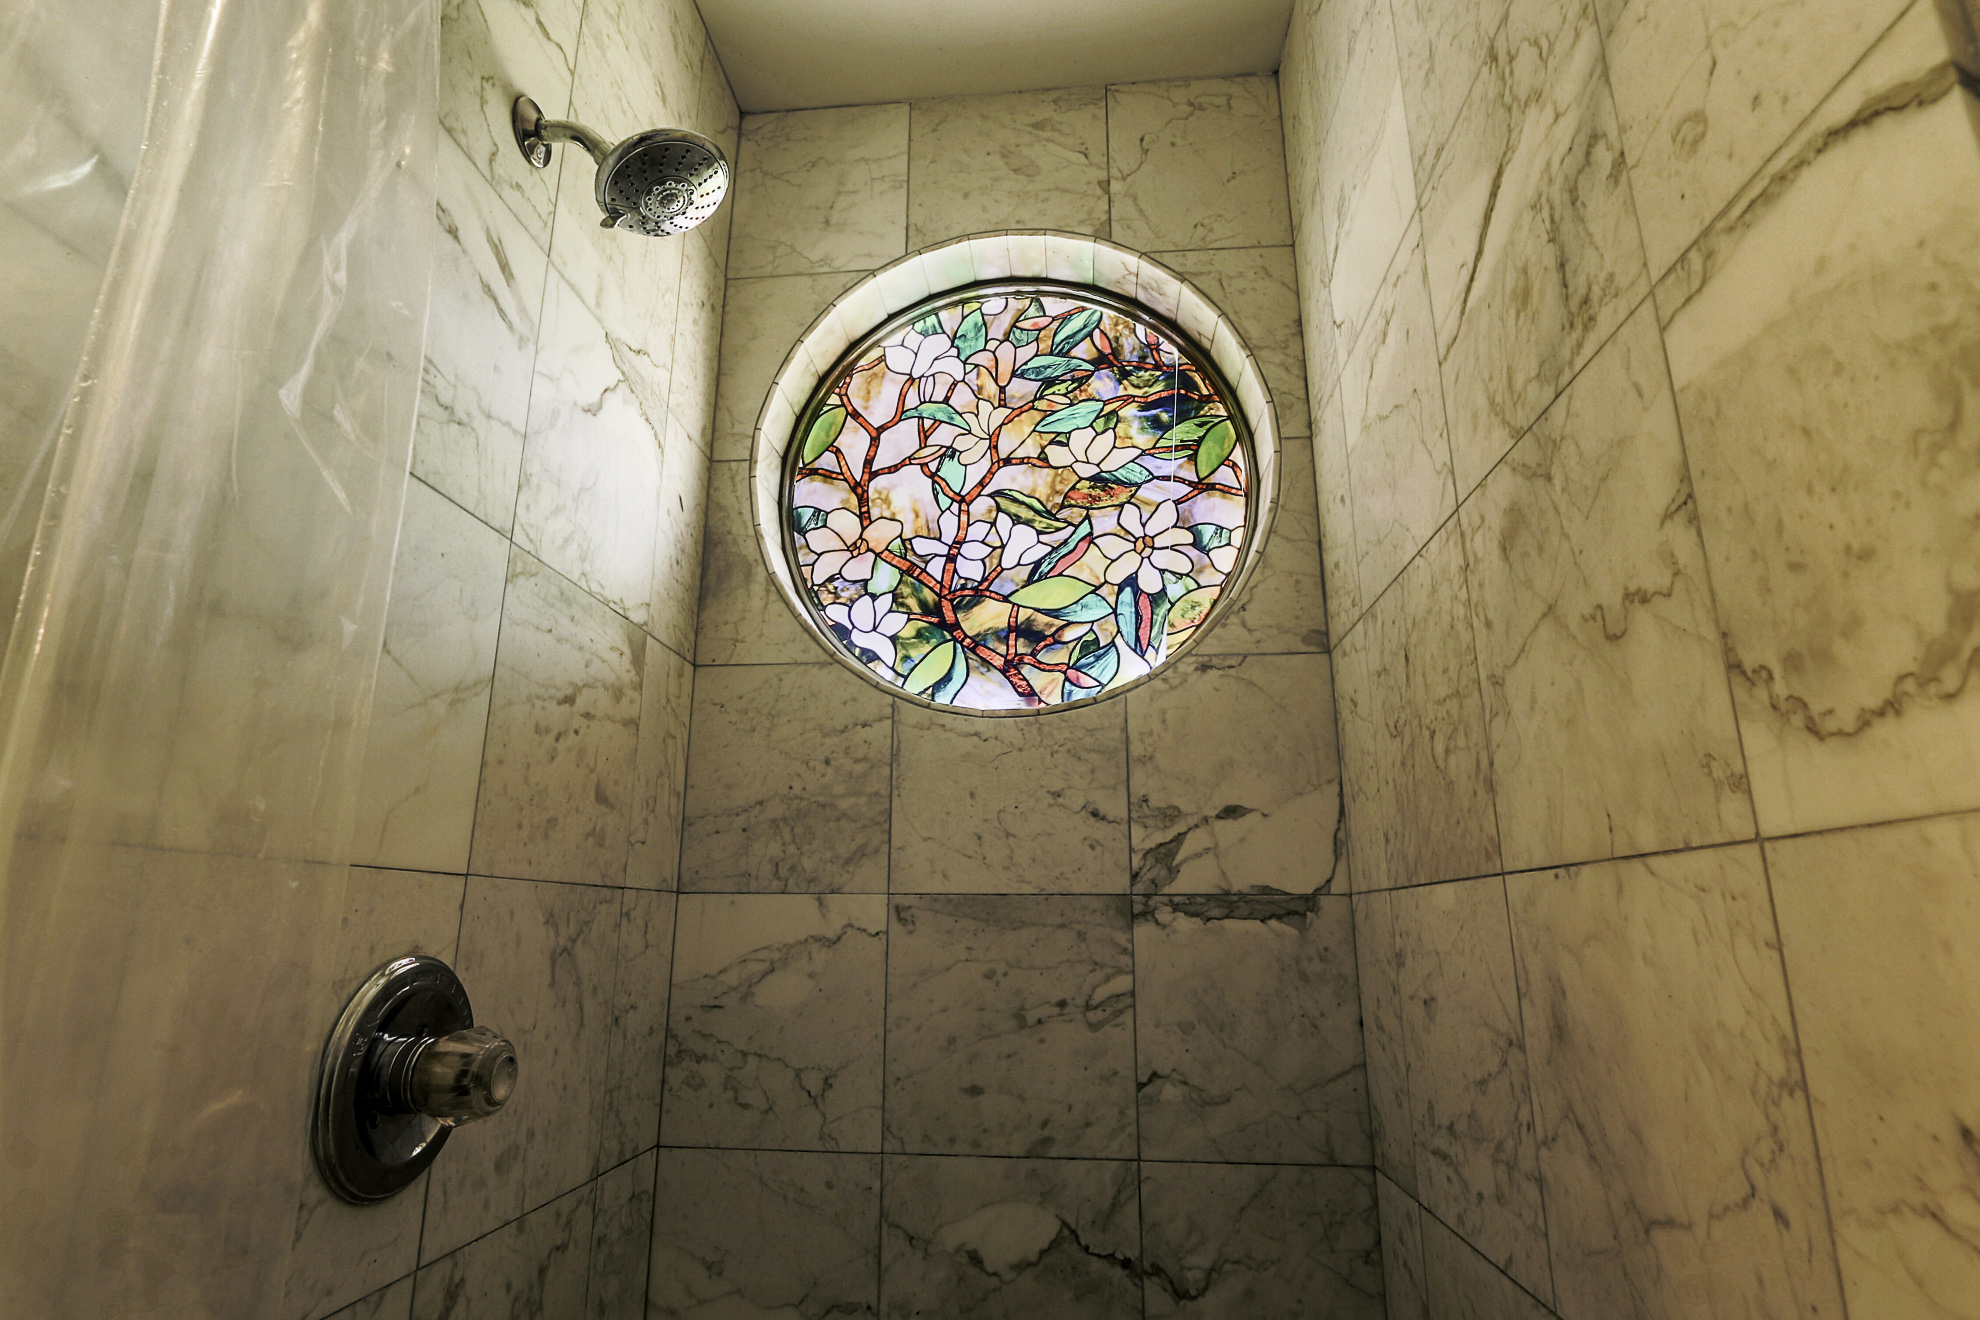 Stain glass shower window is surrounded by marble